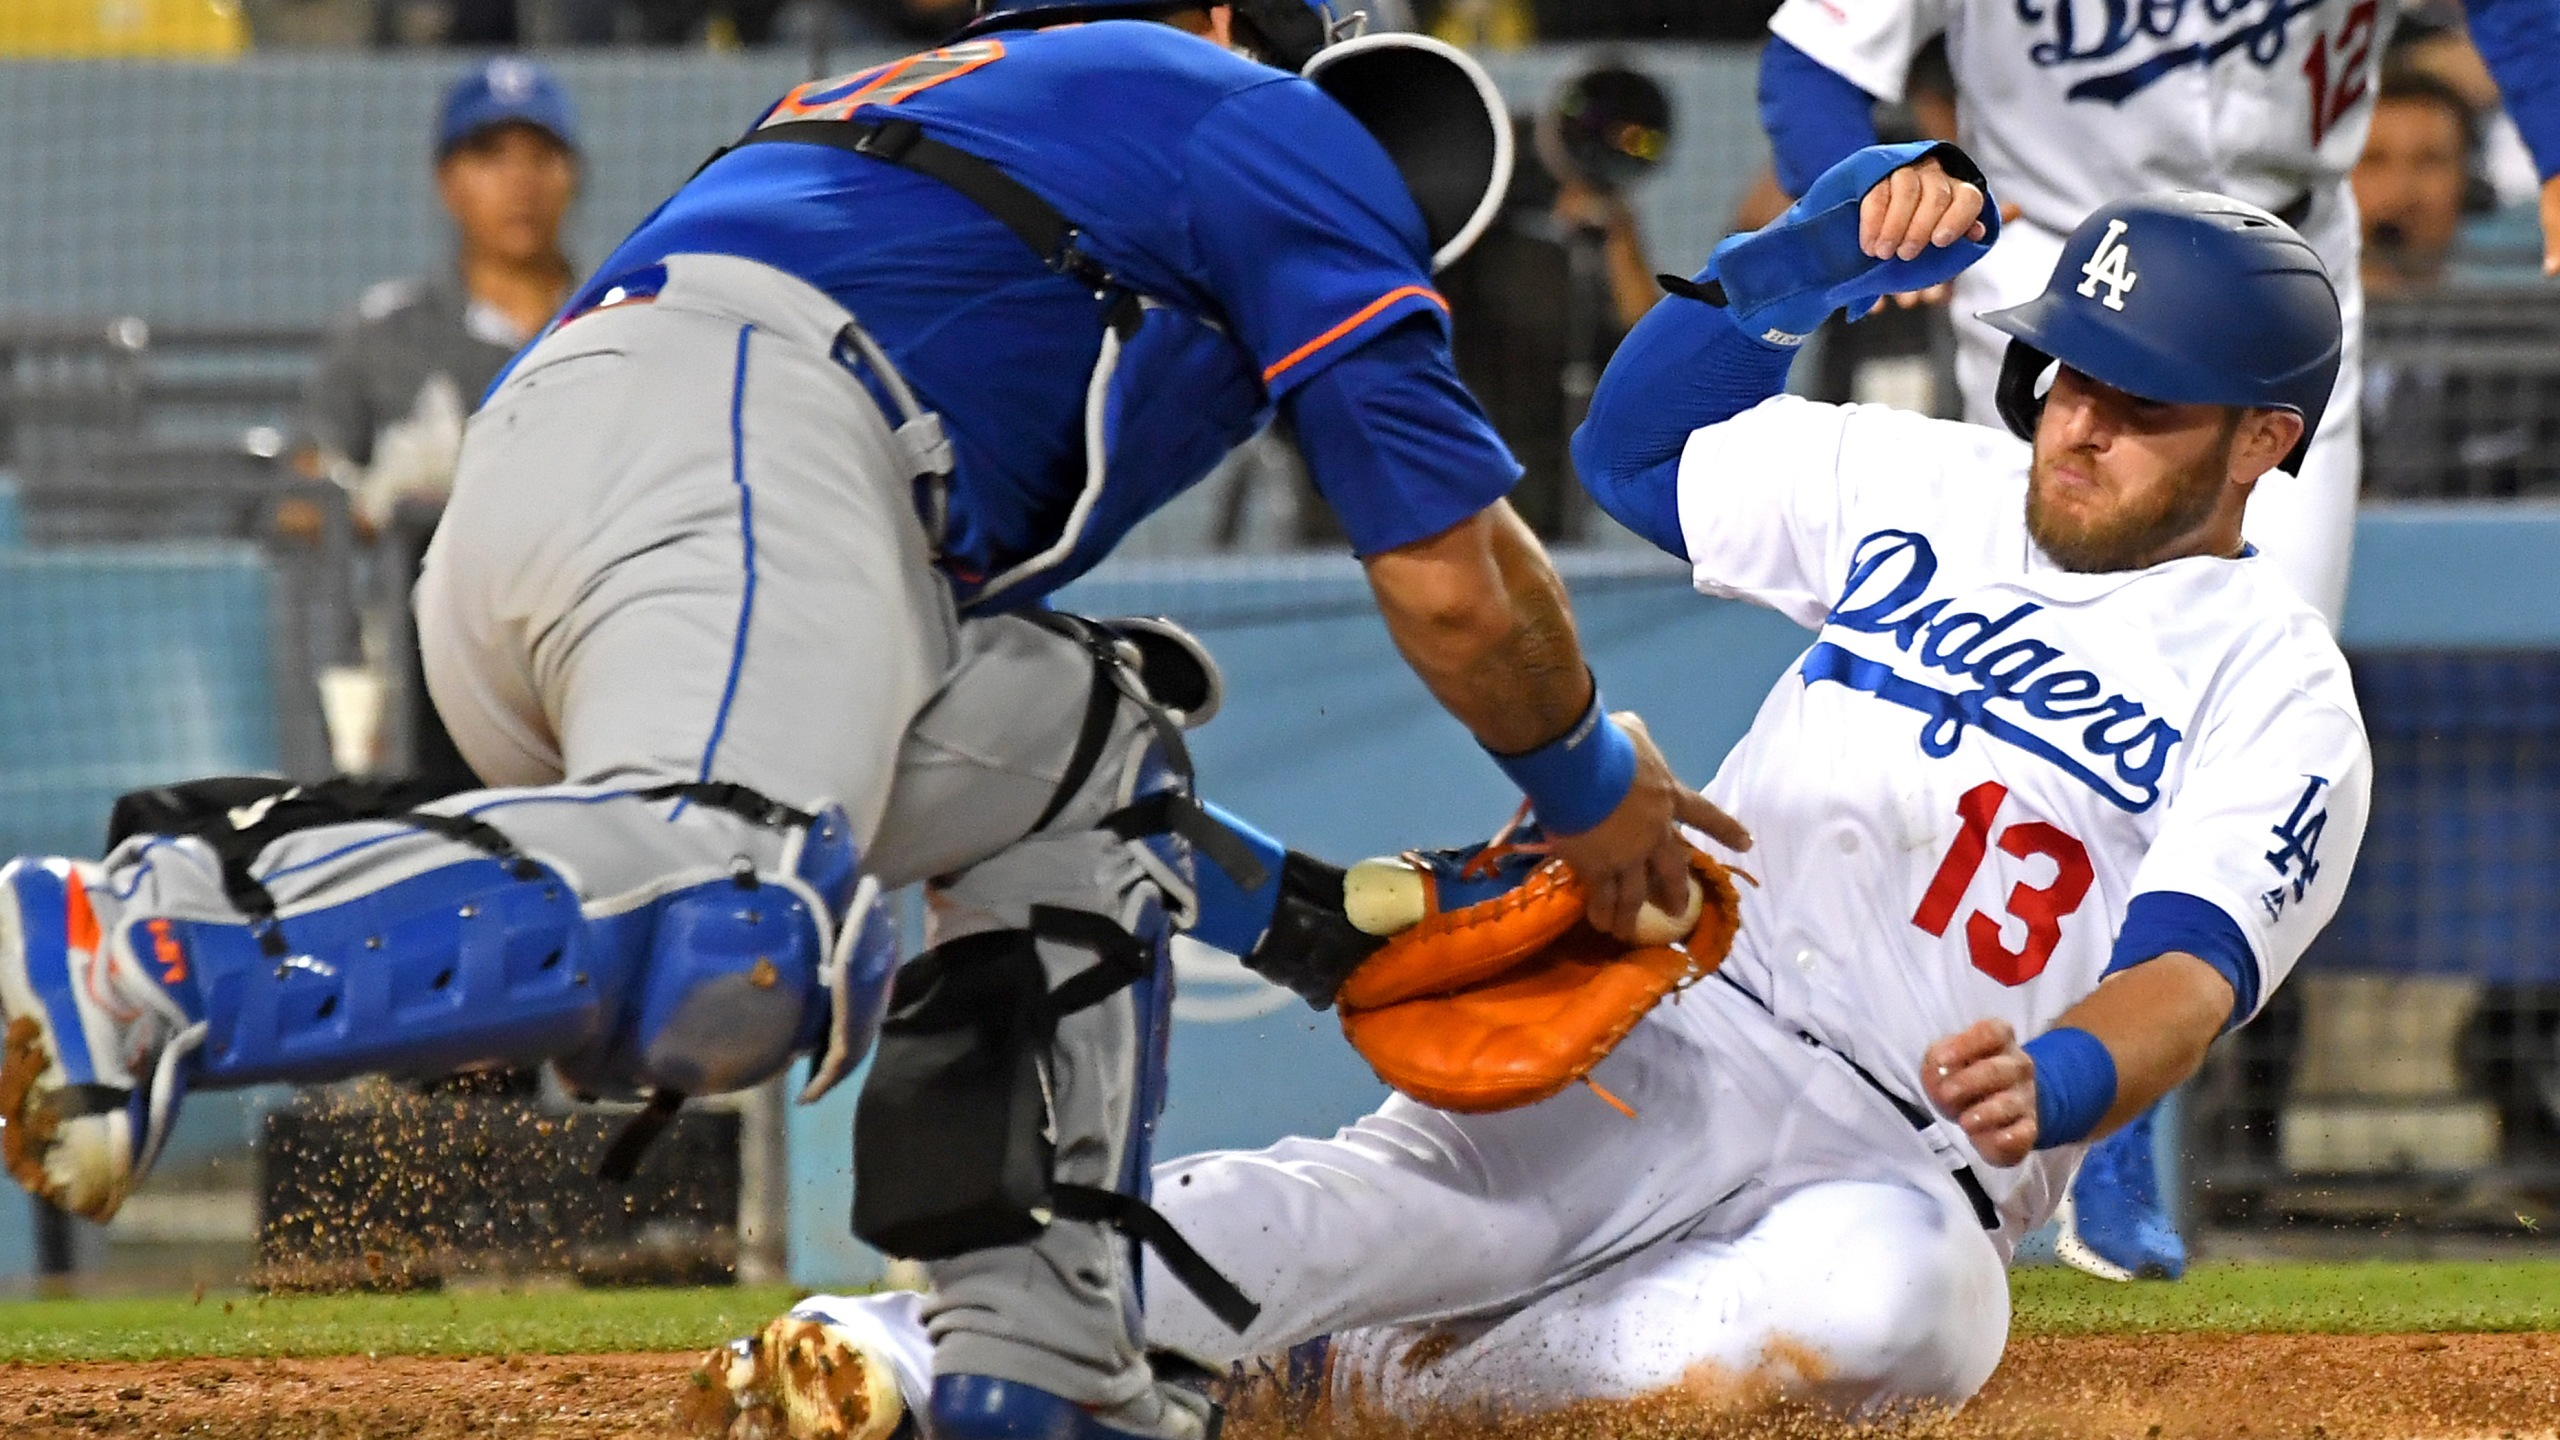 Max Muncy of the Los Angeles Dodgers is safe at home as he beats the tag by Wilson Ramos of the New York Mets, scoring on a single by Justin Turner at Dodger Stadium on May 29, 2019. (Credit: Jayne Kamin-Oncea / Getty Images)